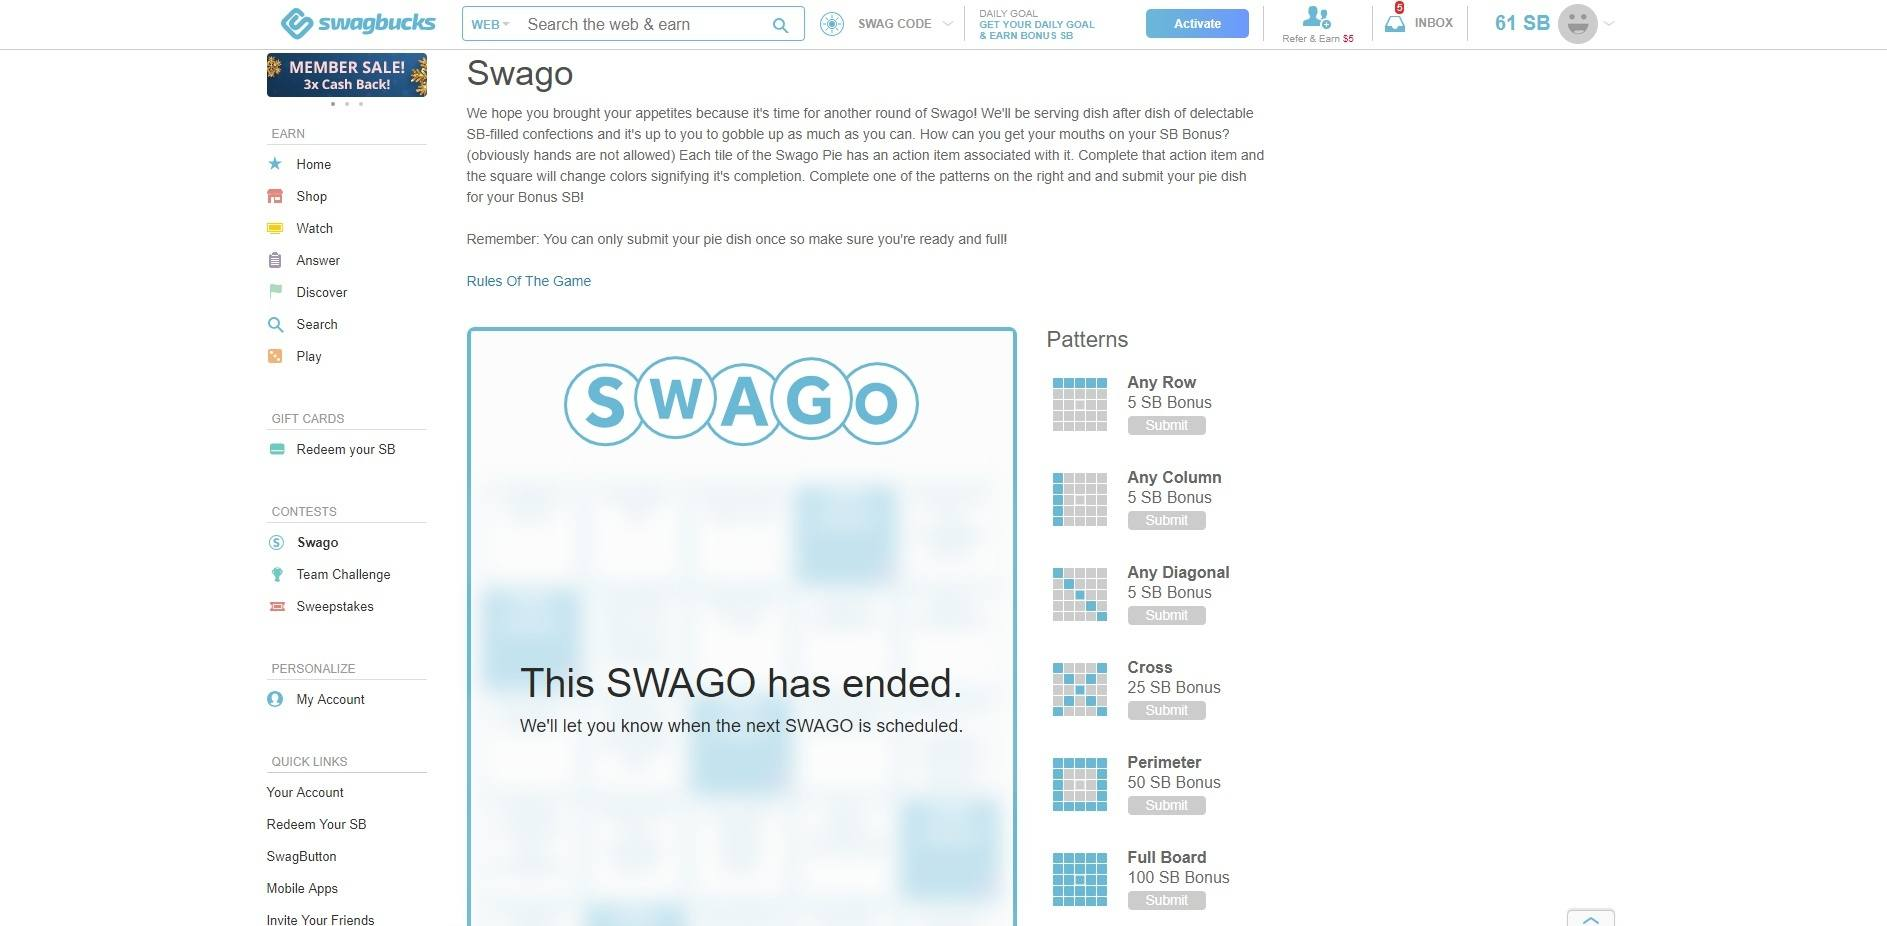 Swagbucks Sign Up Code 2019